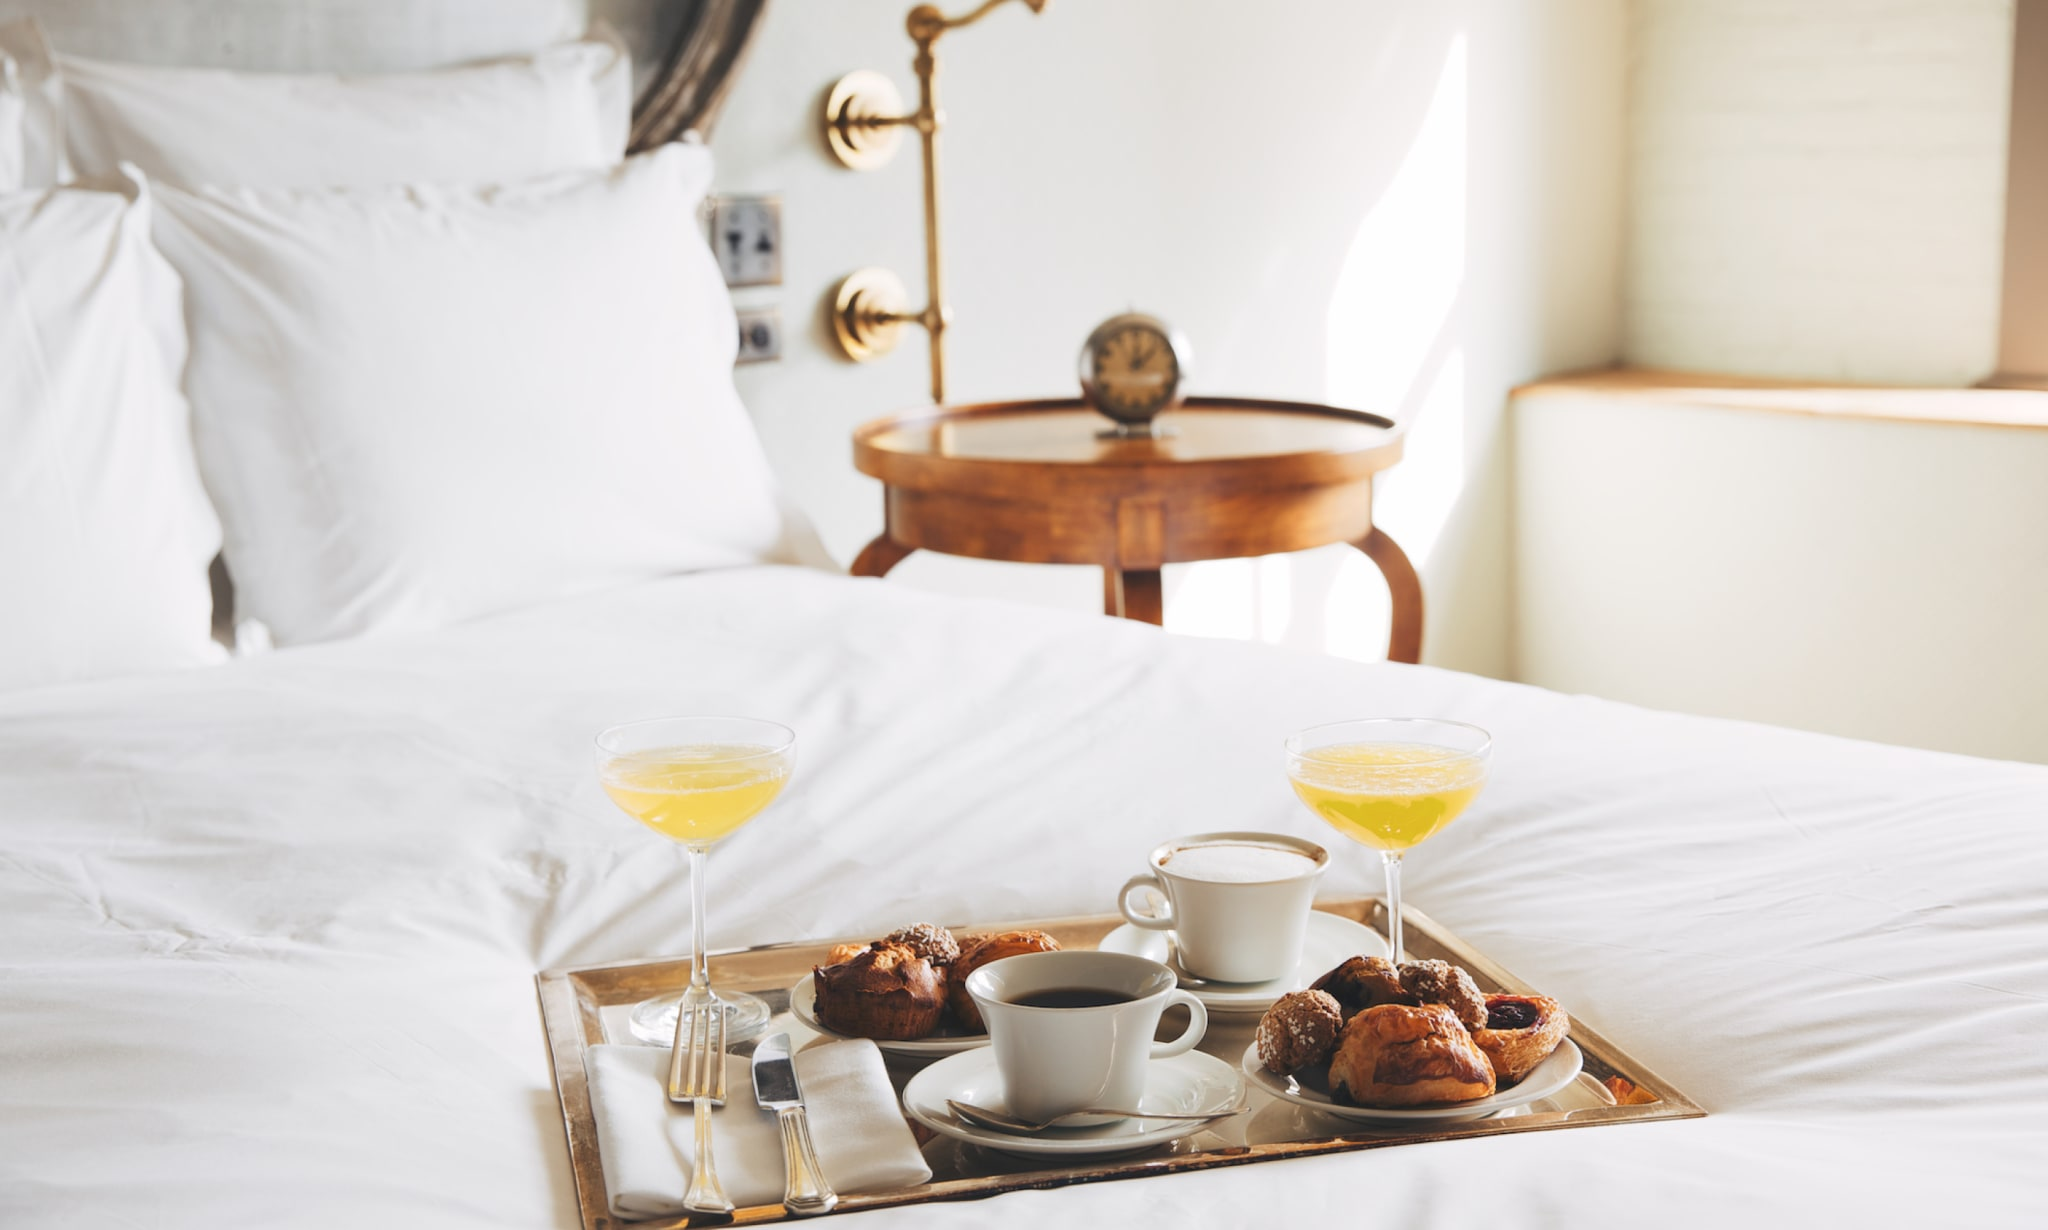 Breakfast room service on a tray on a bed.